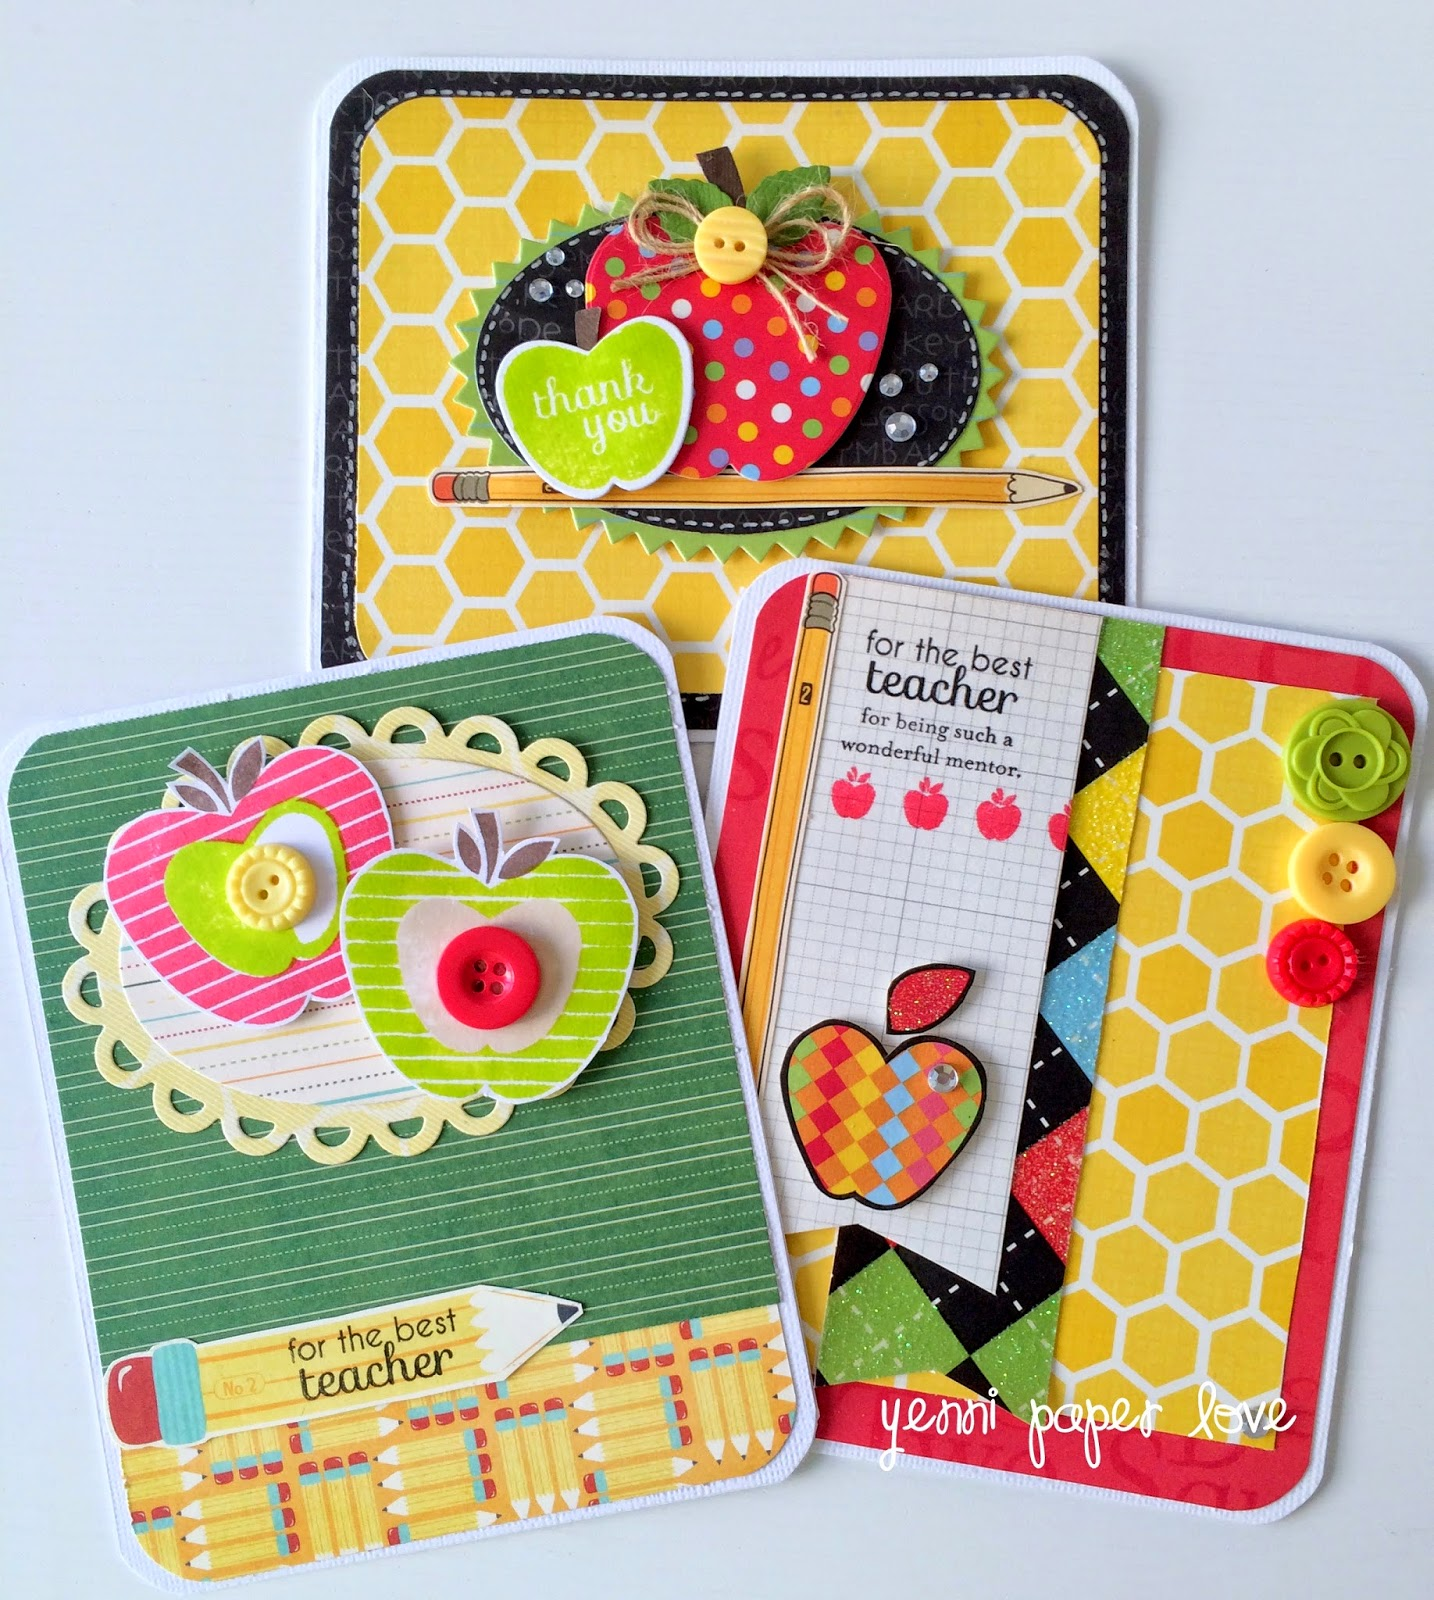 Teacher's day cards and bookmark - Yenni Paper Love